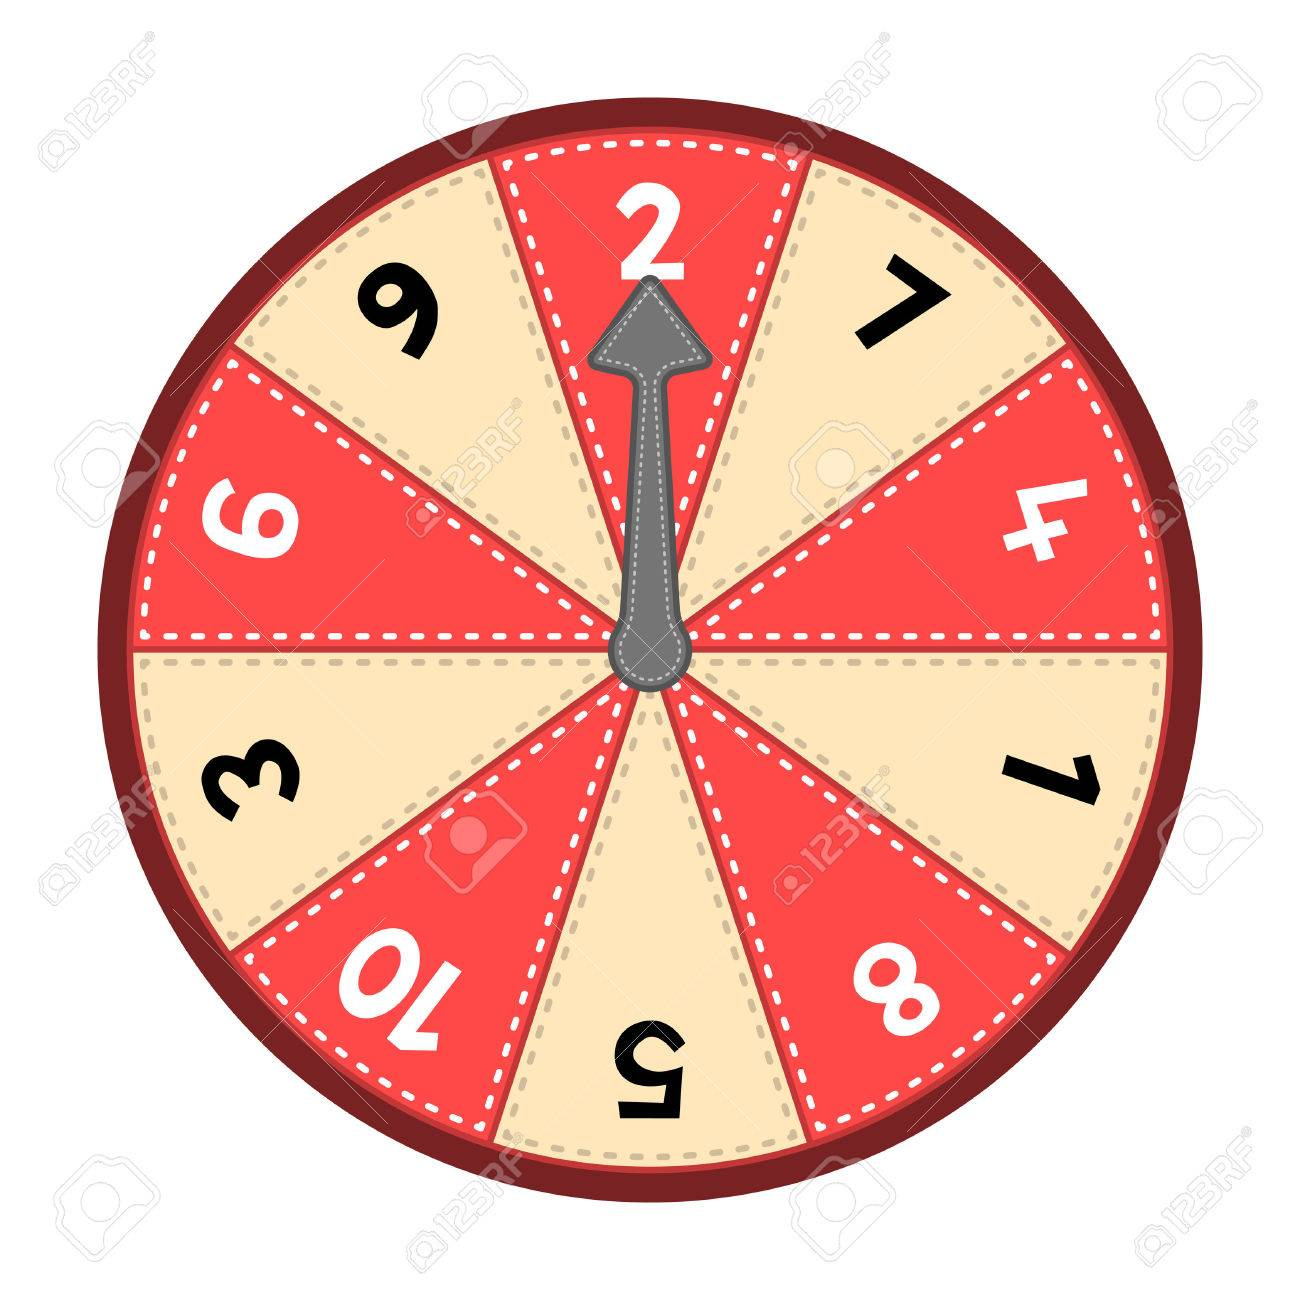 Vector number wheel showing numbers 1-10 in a random odd-even order. Assets are on separate layers with dashed strokes Stock Vector - 25475506